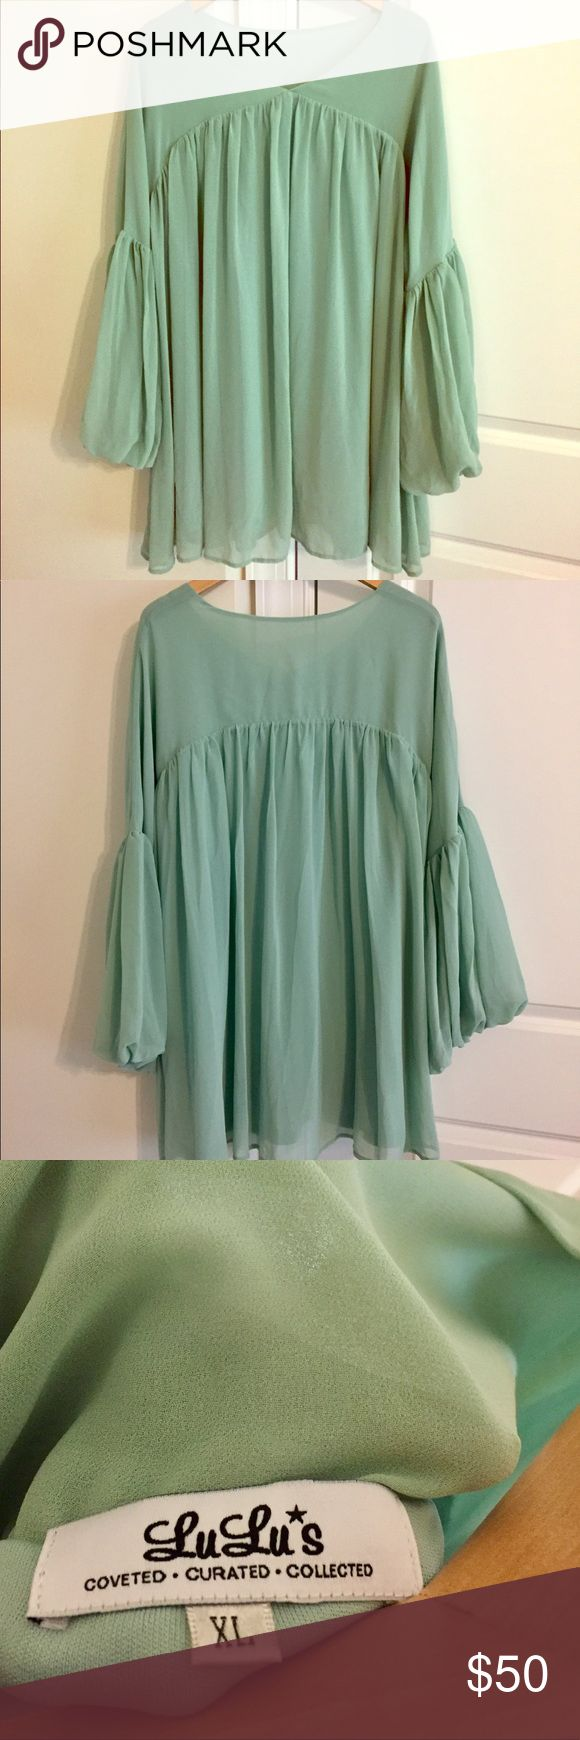 Lulu's Bohemian Mint Green Shirt Dress Super cute, great for a wedding or day out with friends!  Perfect spring color and great for any figure.  Extremely comfortable!  Only worn once! Lulu's Dresses Mini